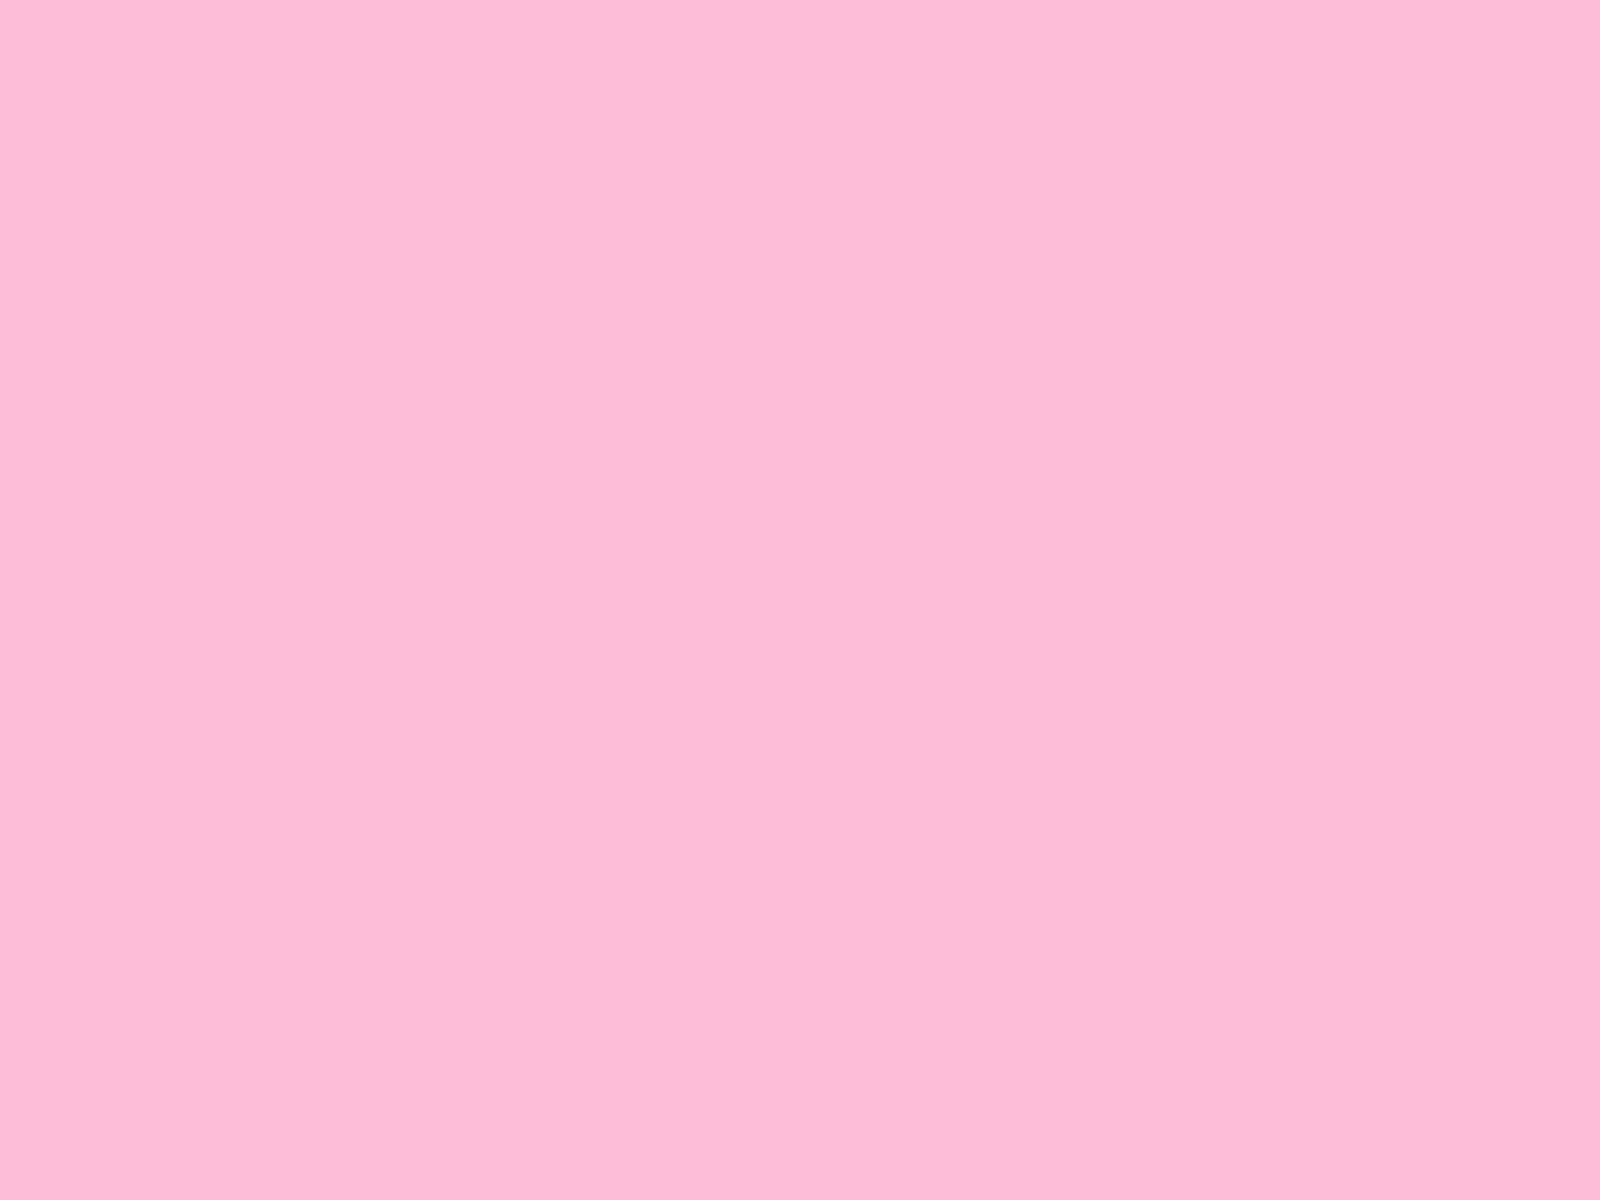 1600x1200 Cotton Candy Solid Color Background